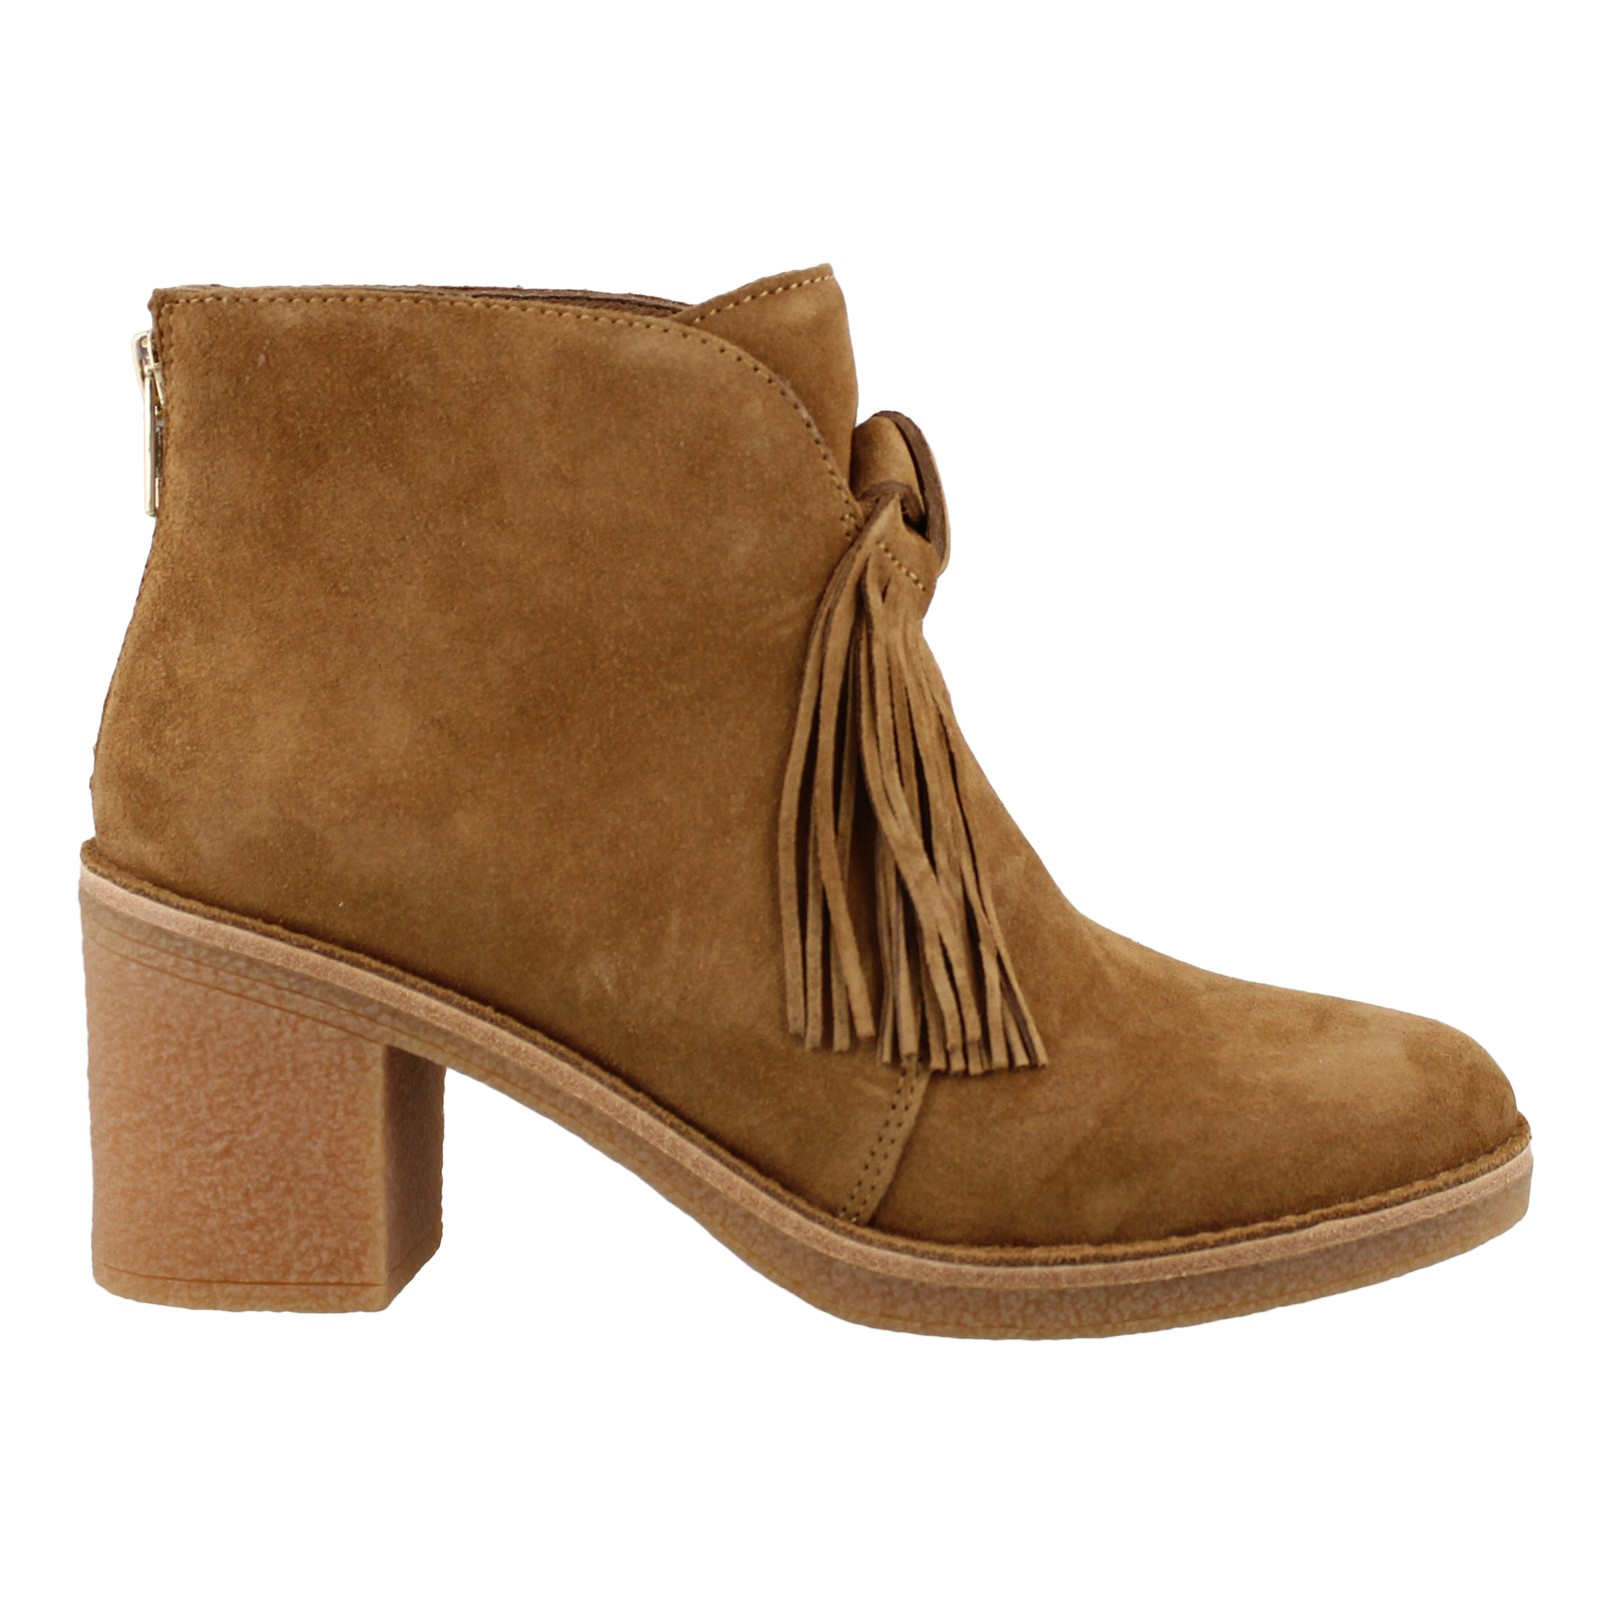 Women's Ugg, Corin High Heel Boots